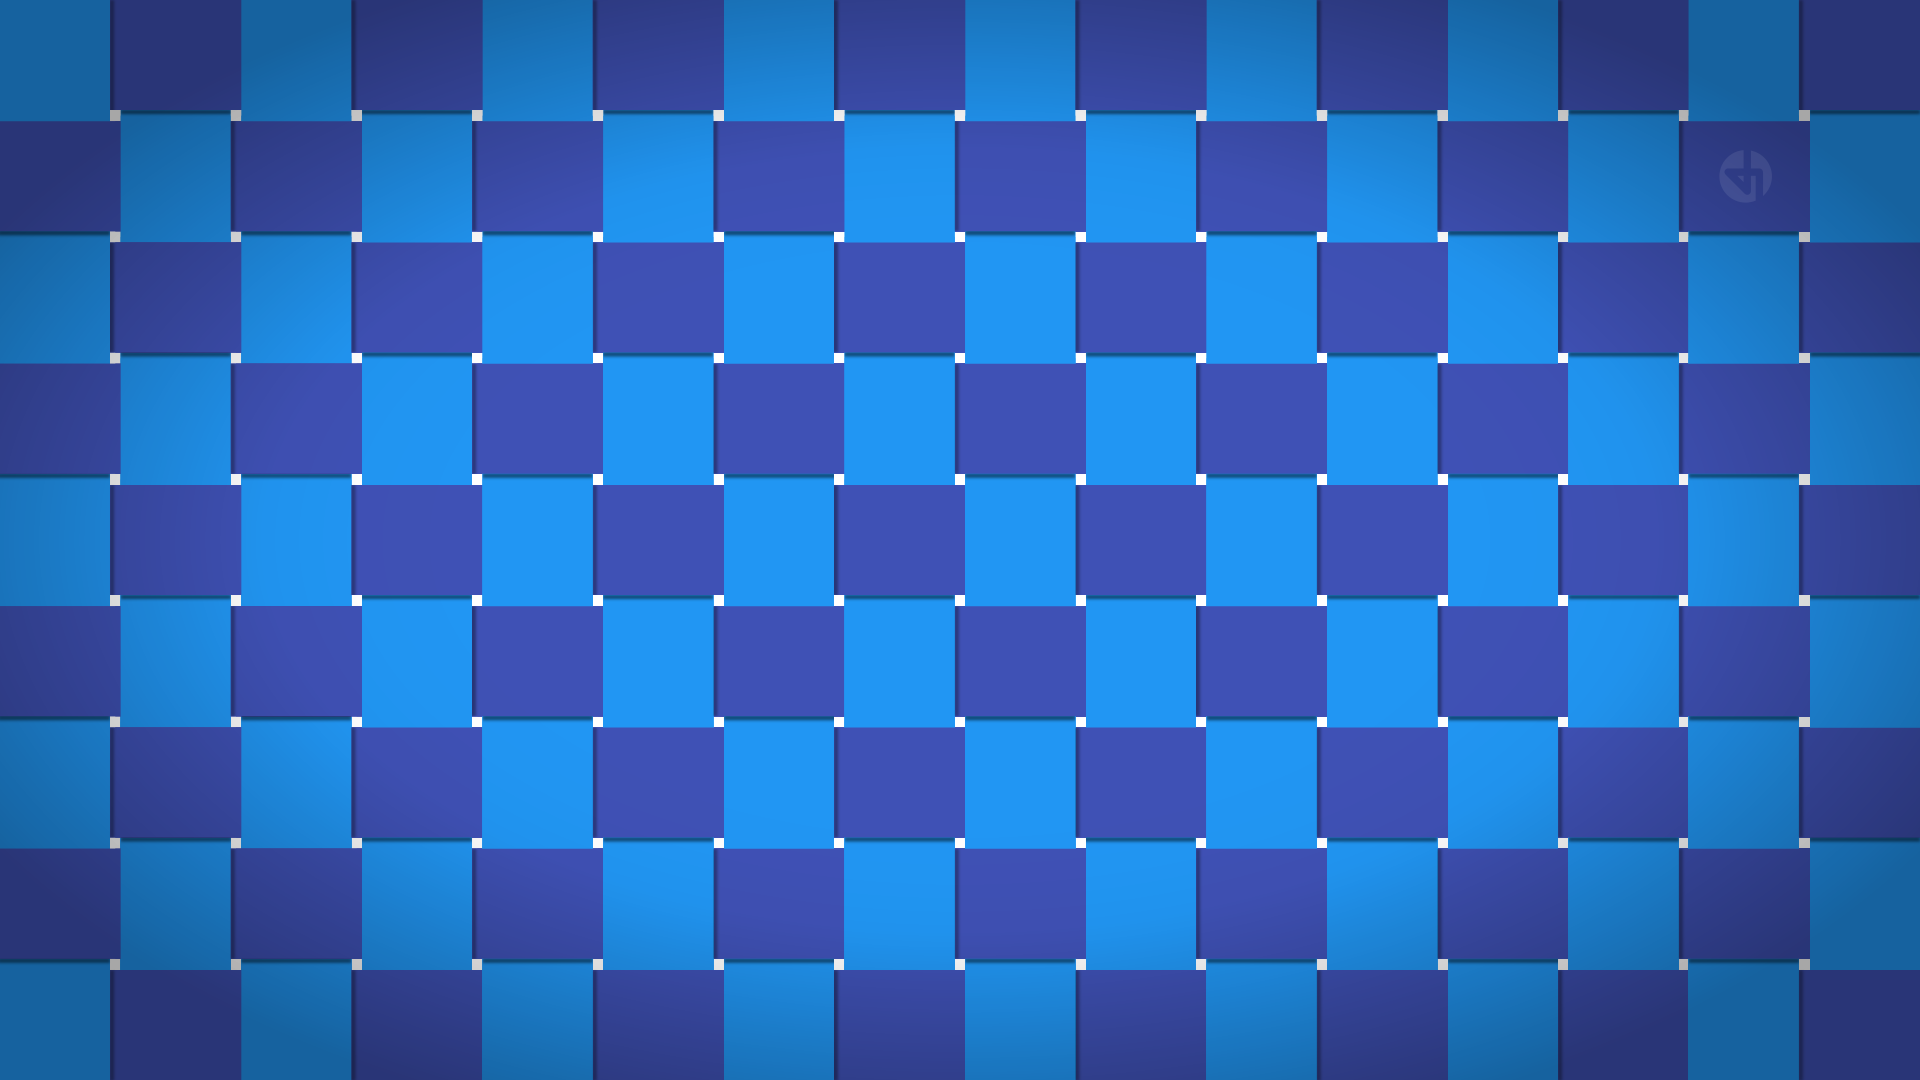 Simulating a complex layered structure in Inkscape with a checkerboard mat.